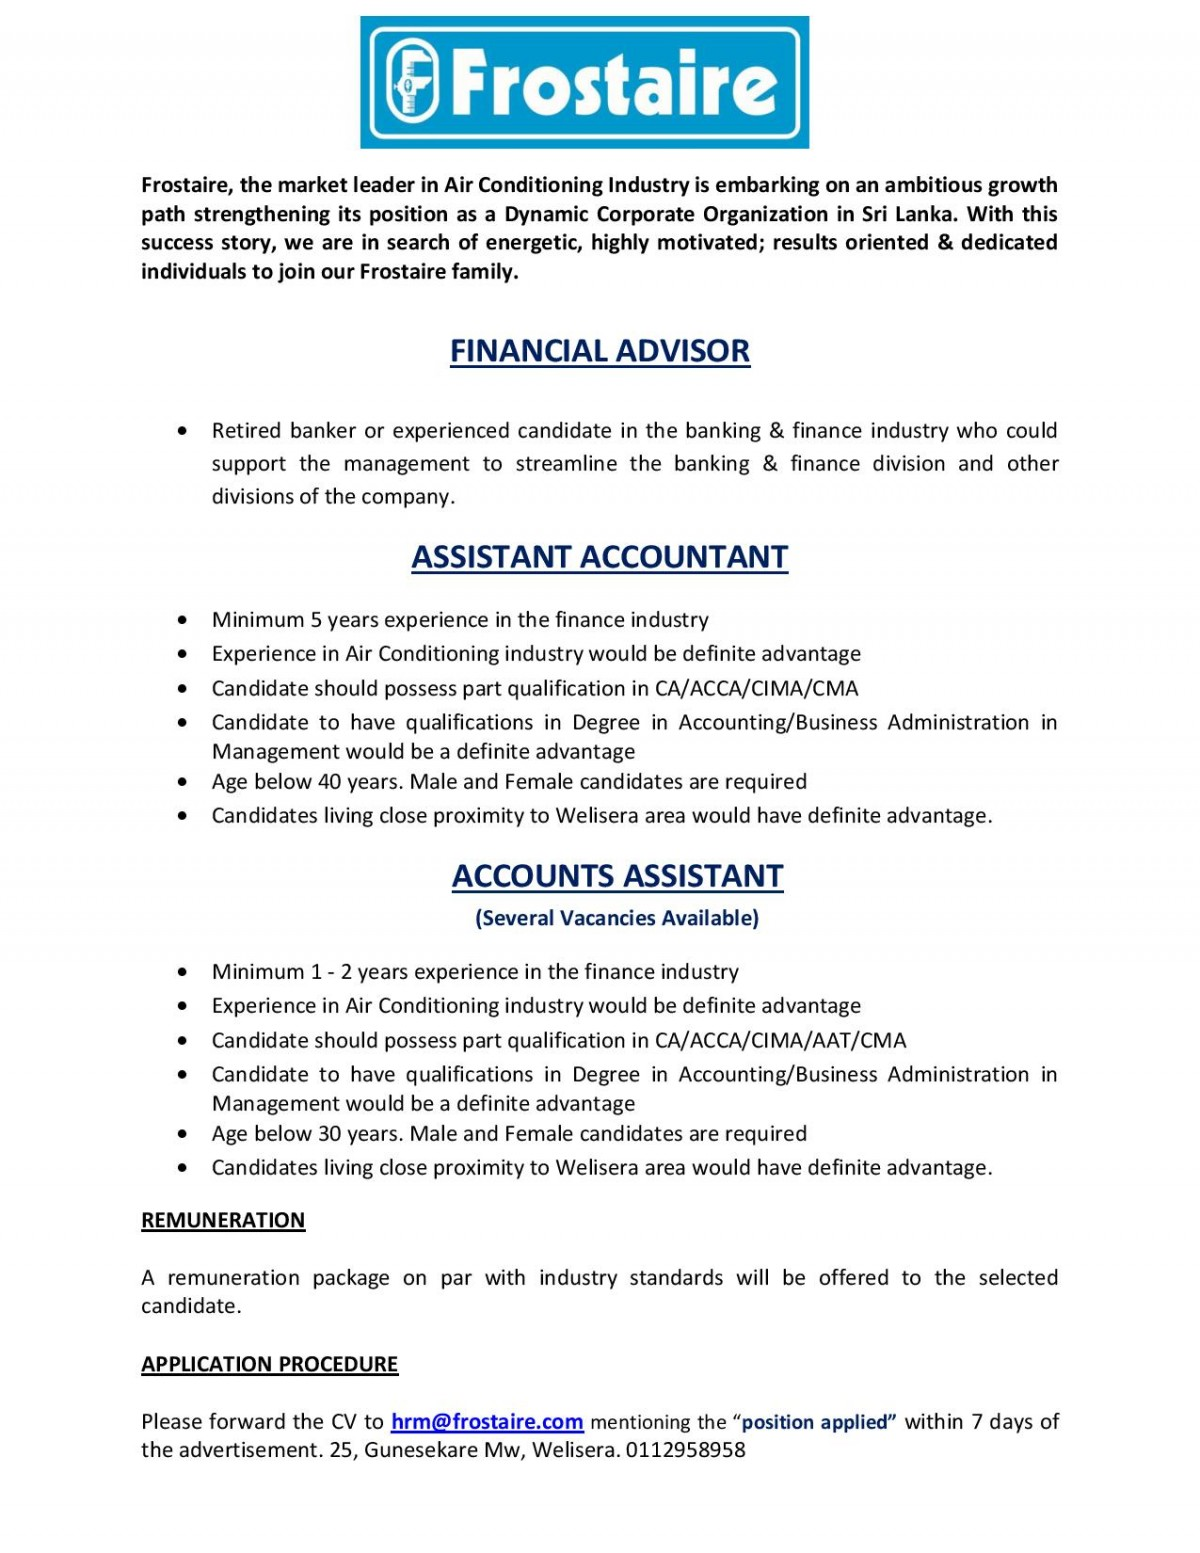 accounts assistants job vacancy in sri lanka